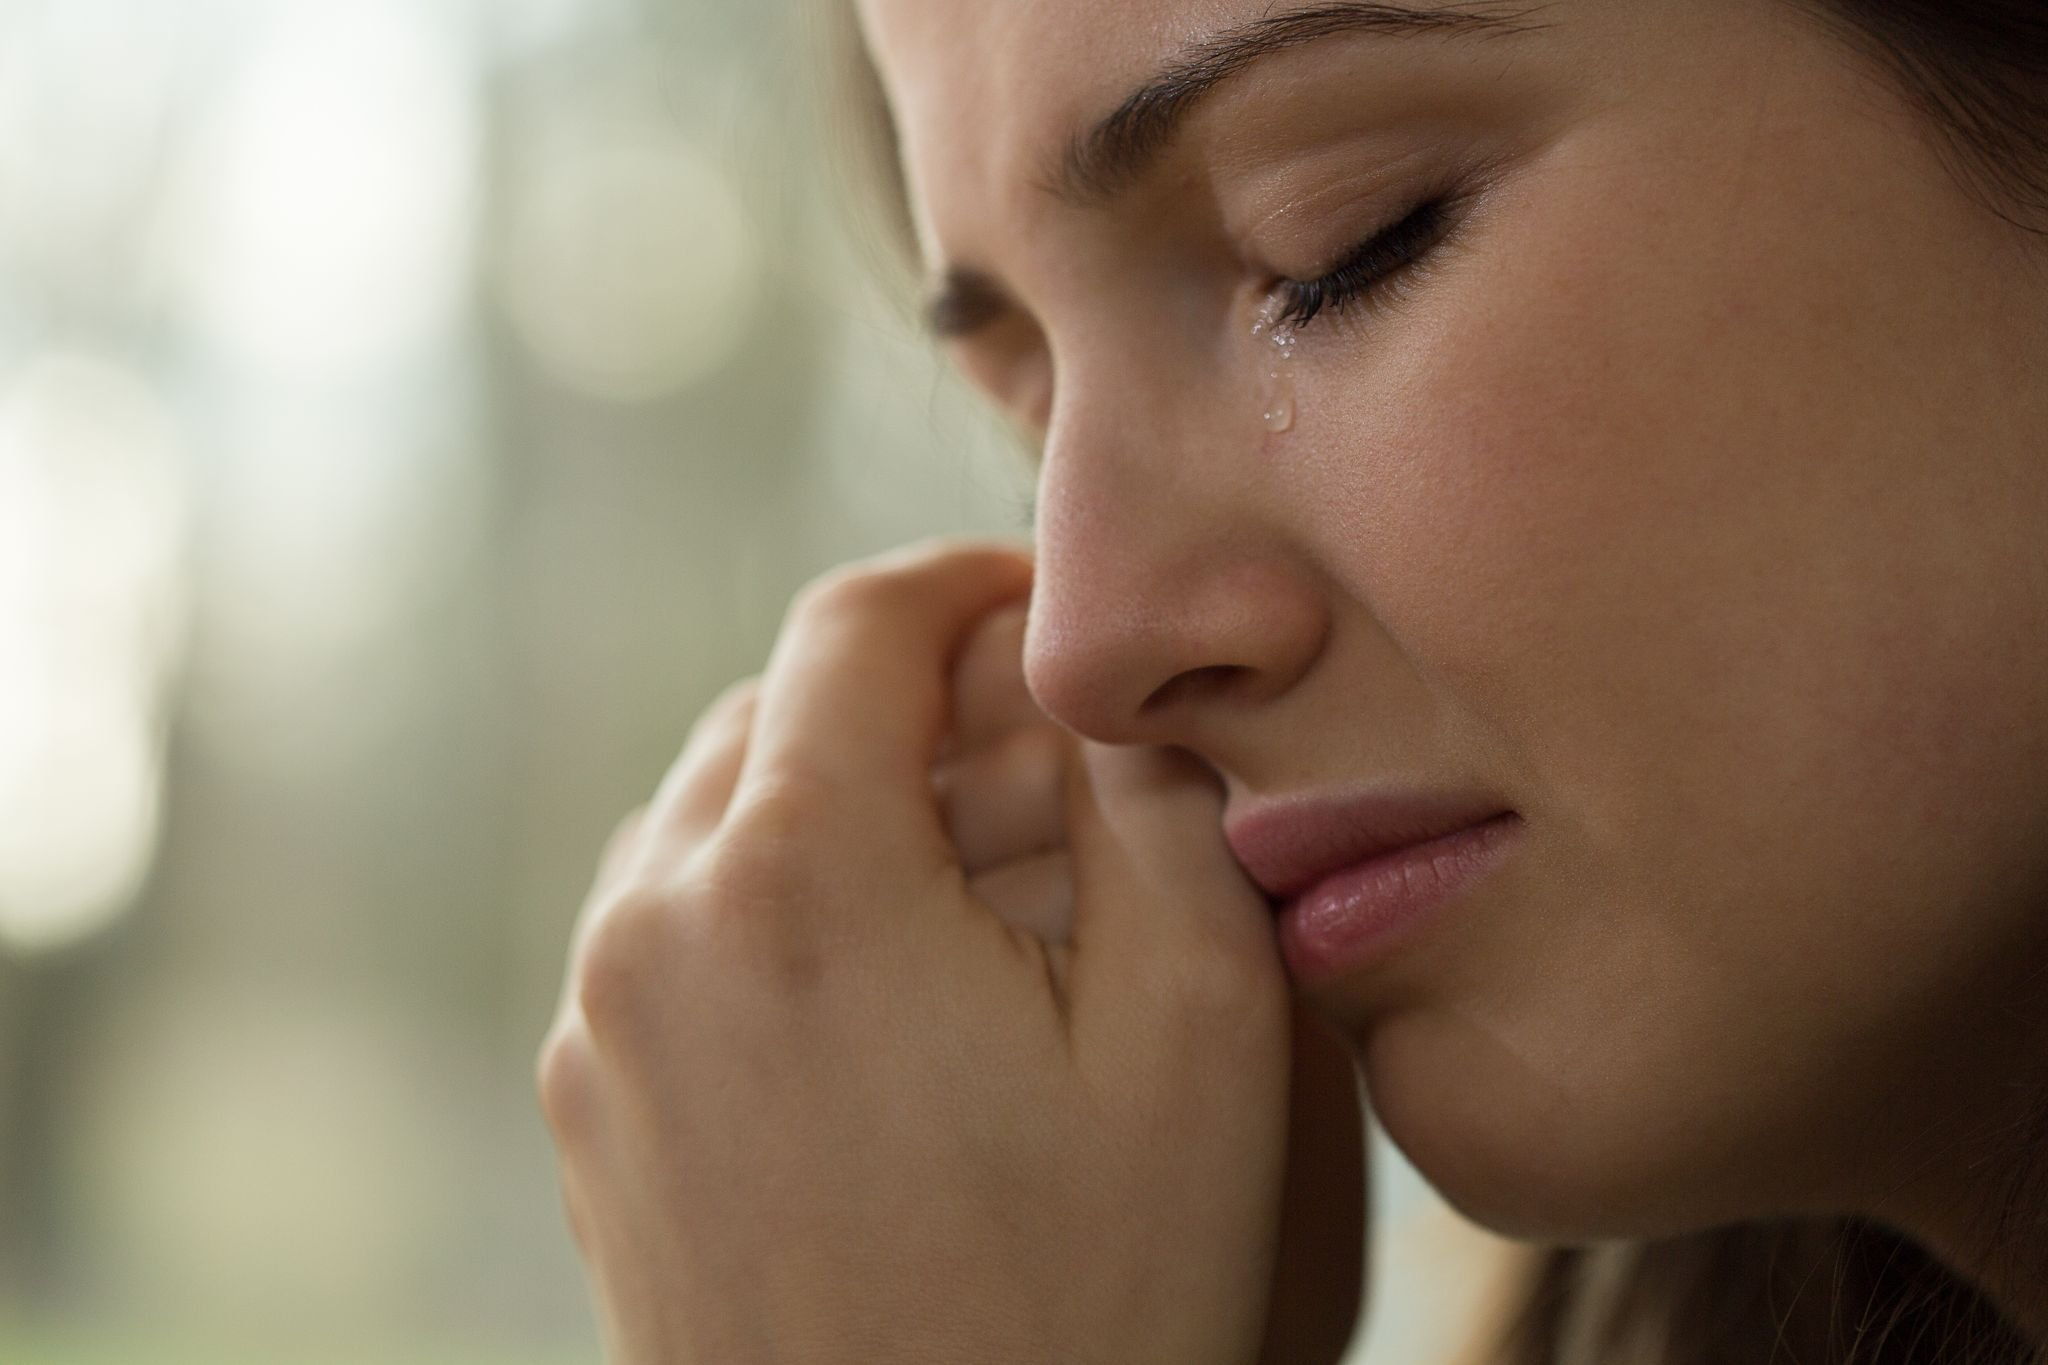 A woman crying with her eyes closed. │ Source: Shutterstock